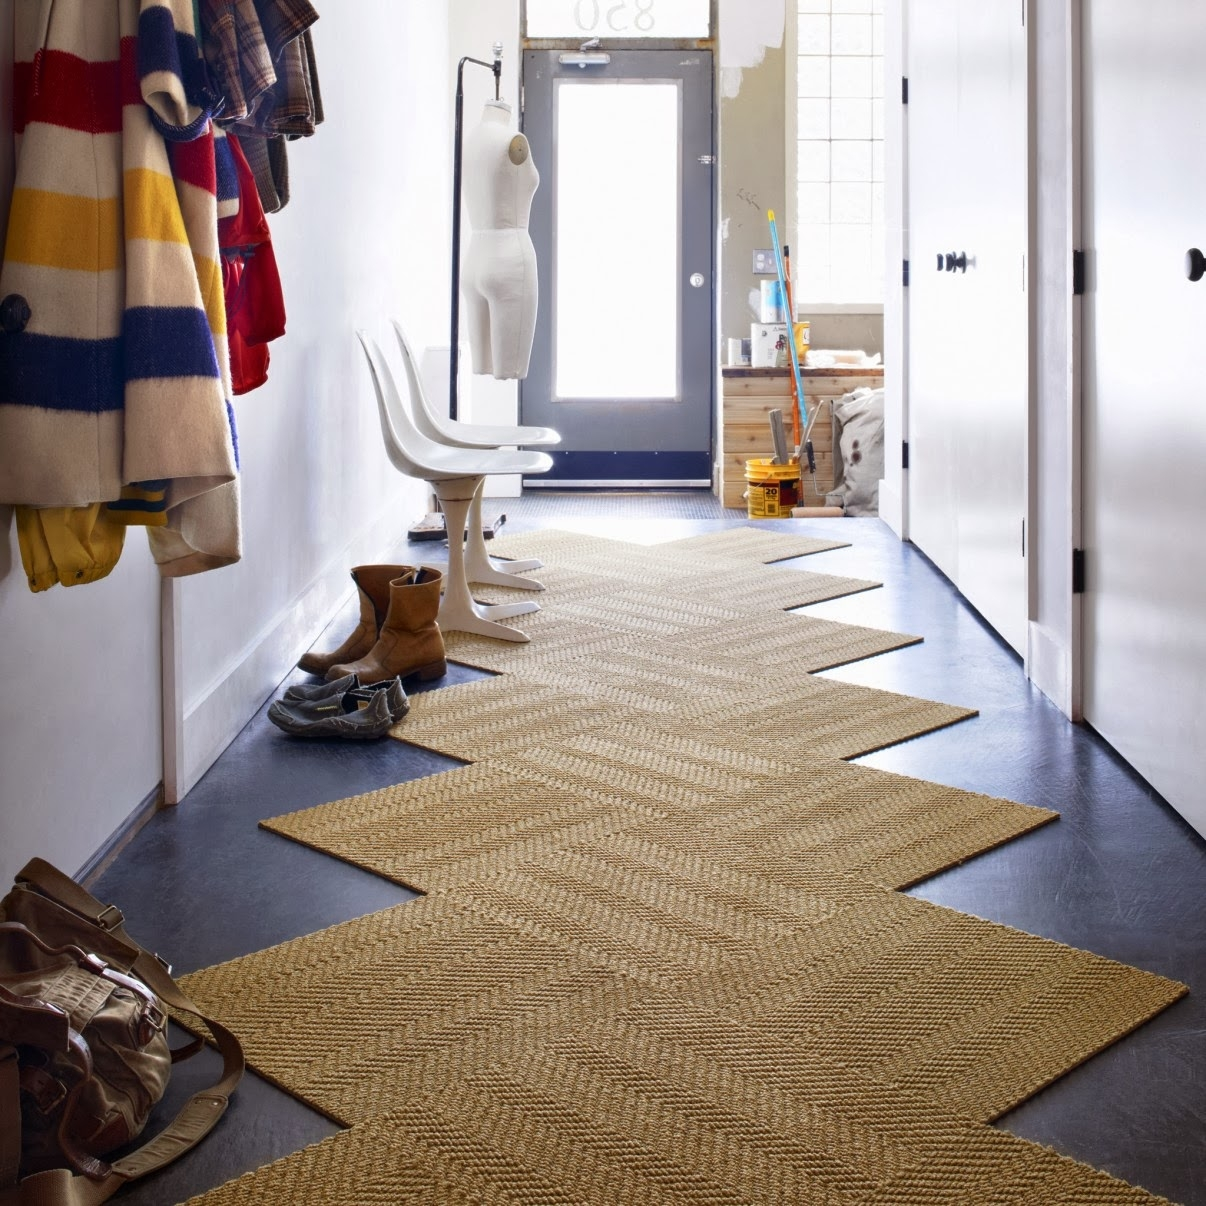 Flooring Lovely Hallway Runners For Floor Decor Idea Throughout Modern Rug Runners For Hallways (View 2 of 20)